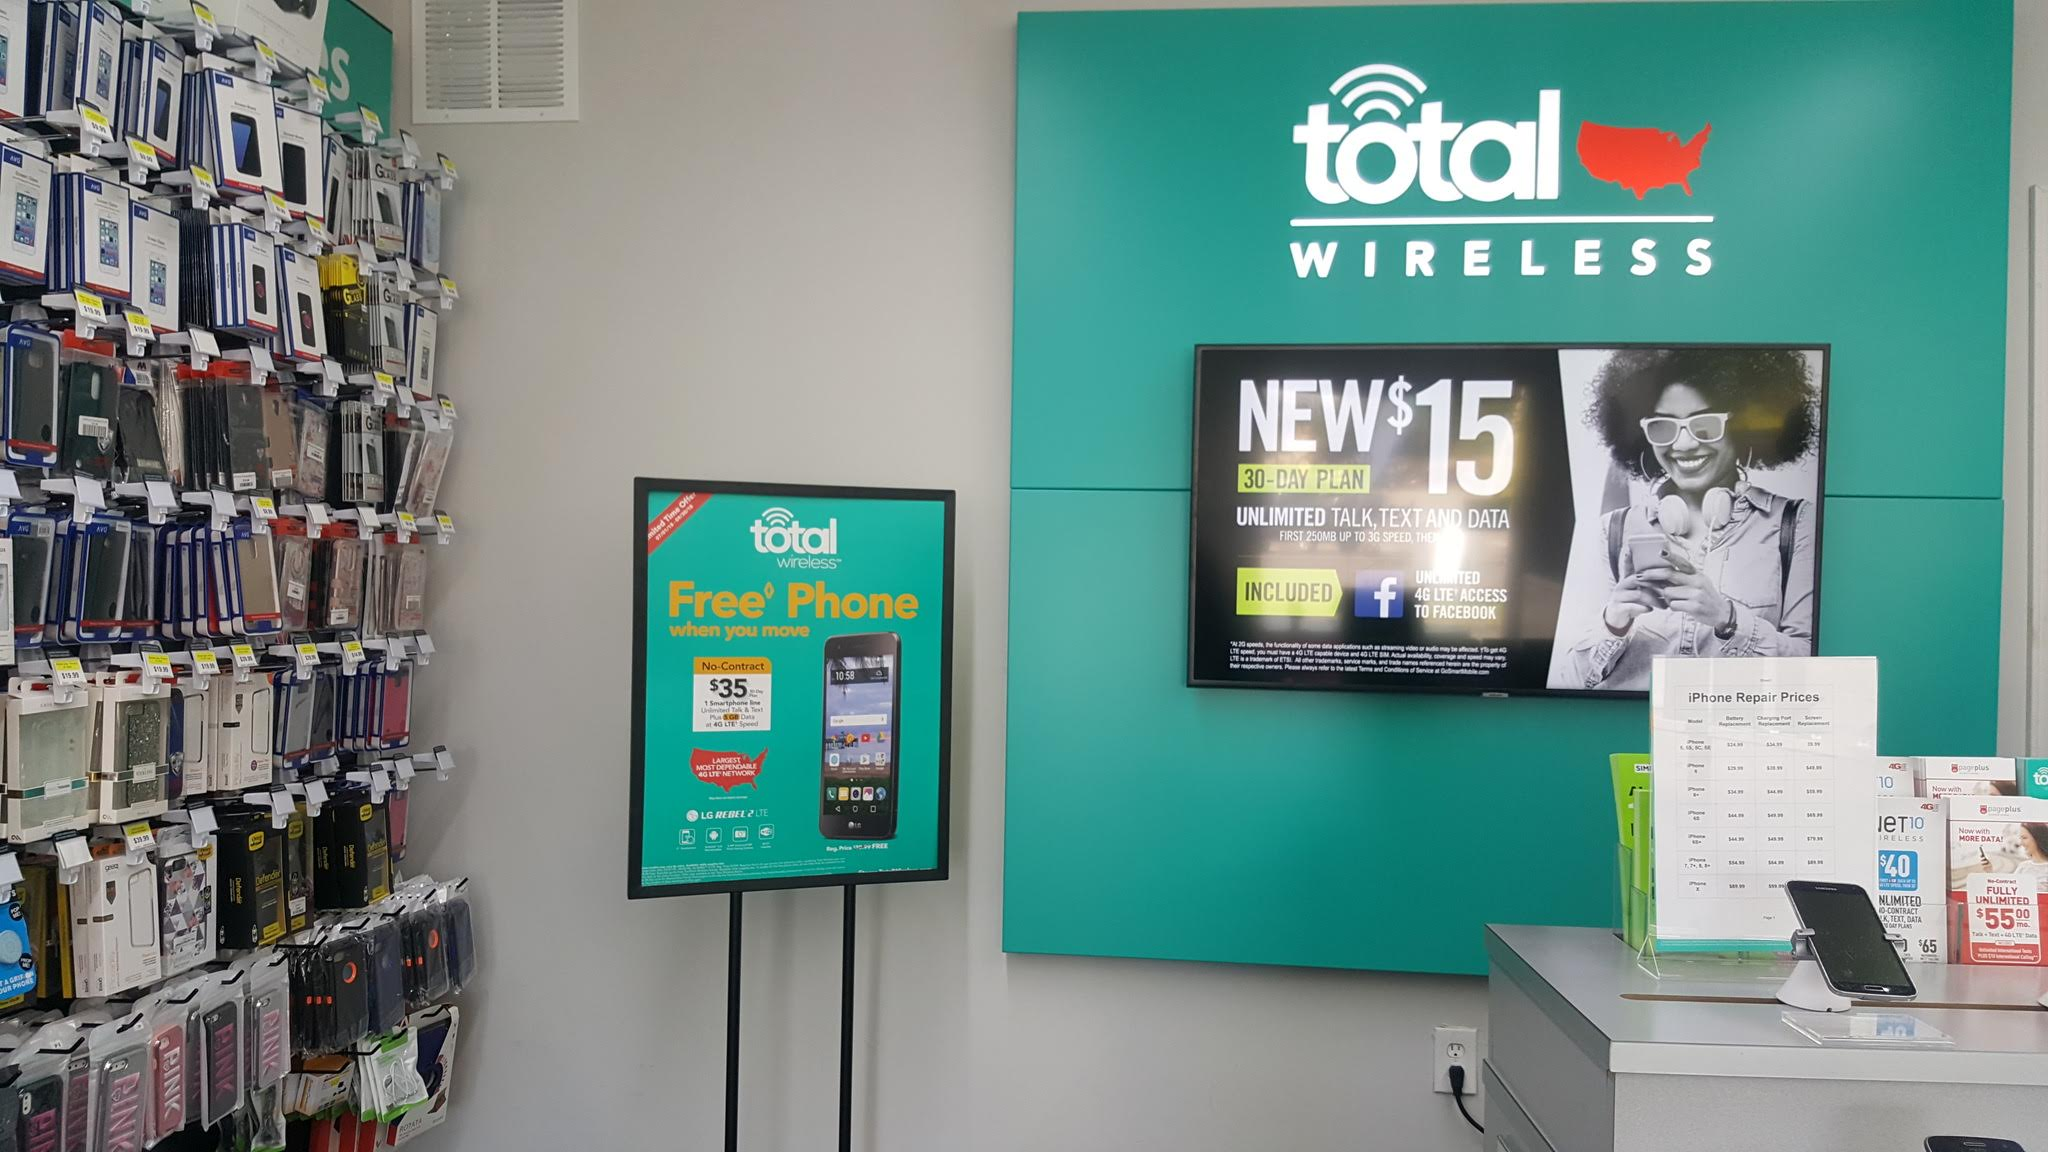 Total Wireless image 1